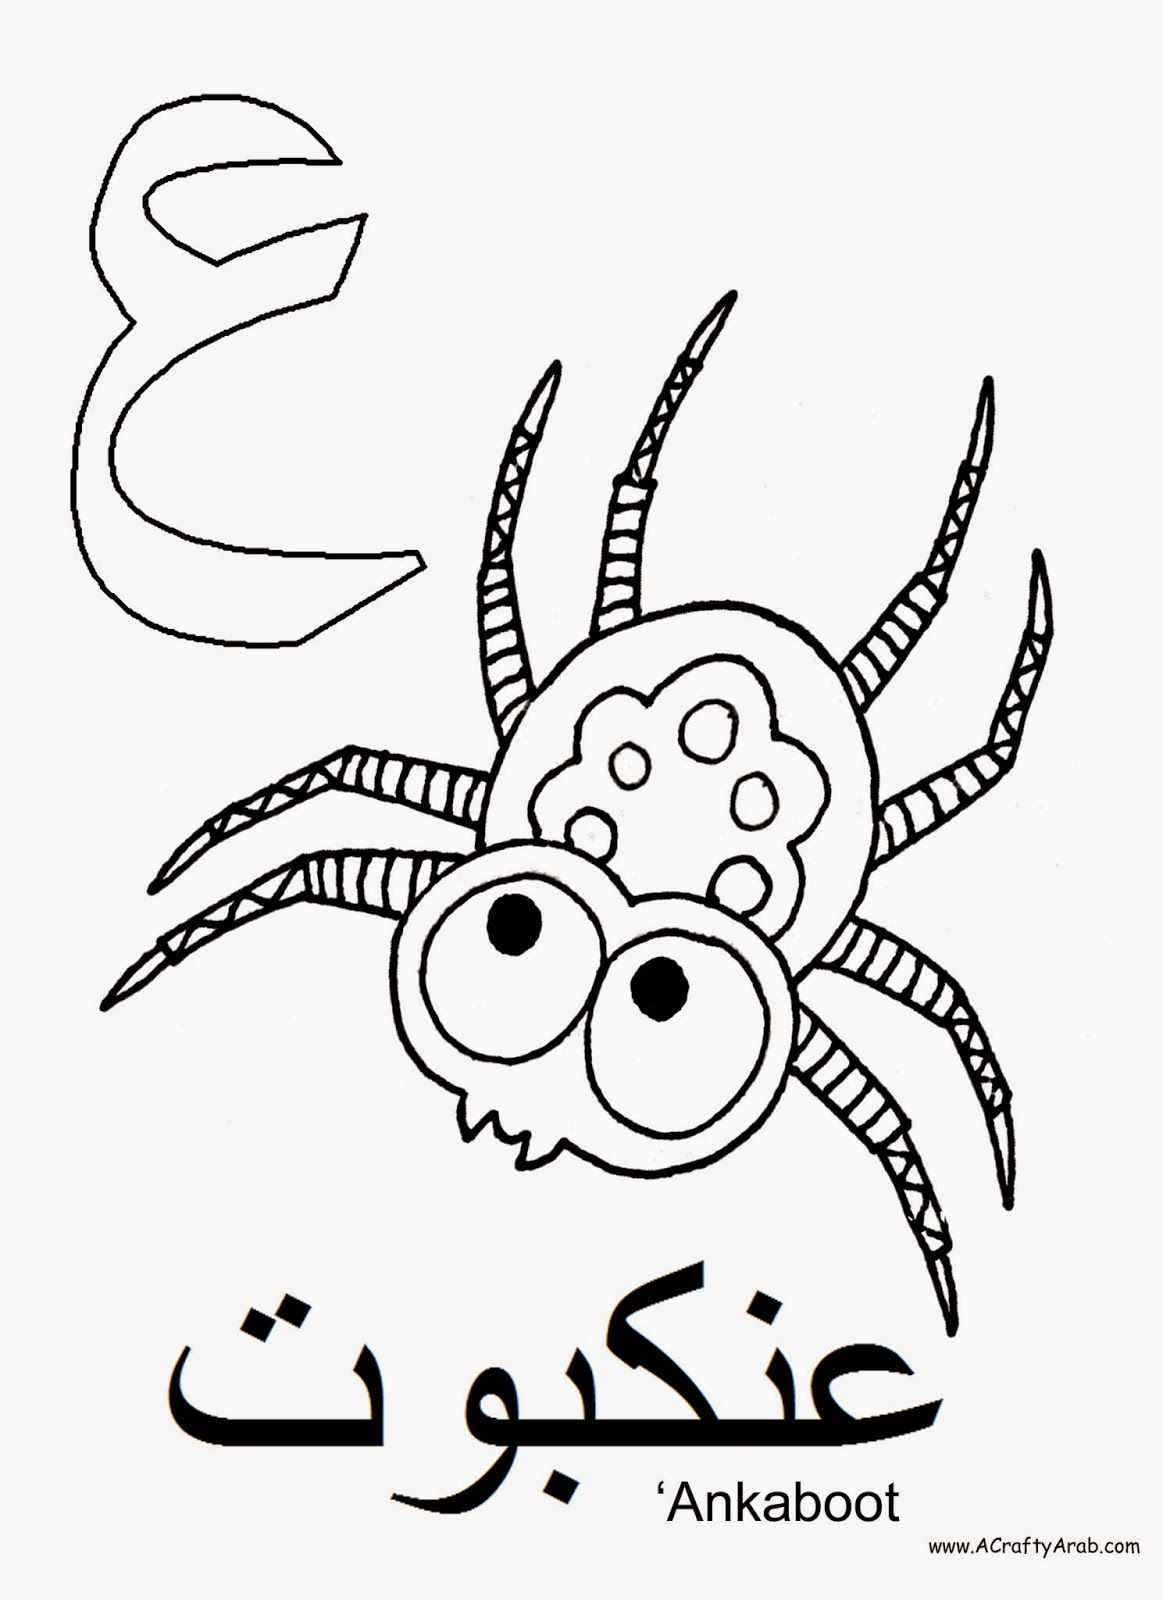 Coloring pages for alphabet - A Crafty Arab Arabic Alphabet Coloring Pages Ayn Is For